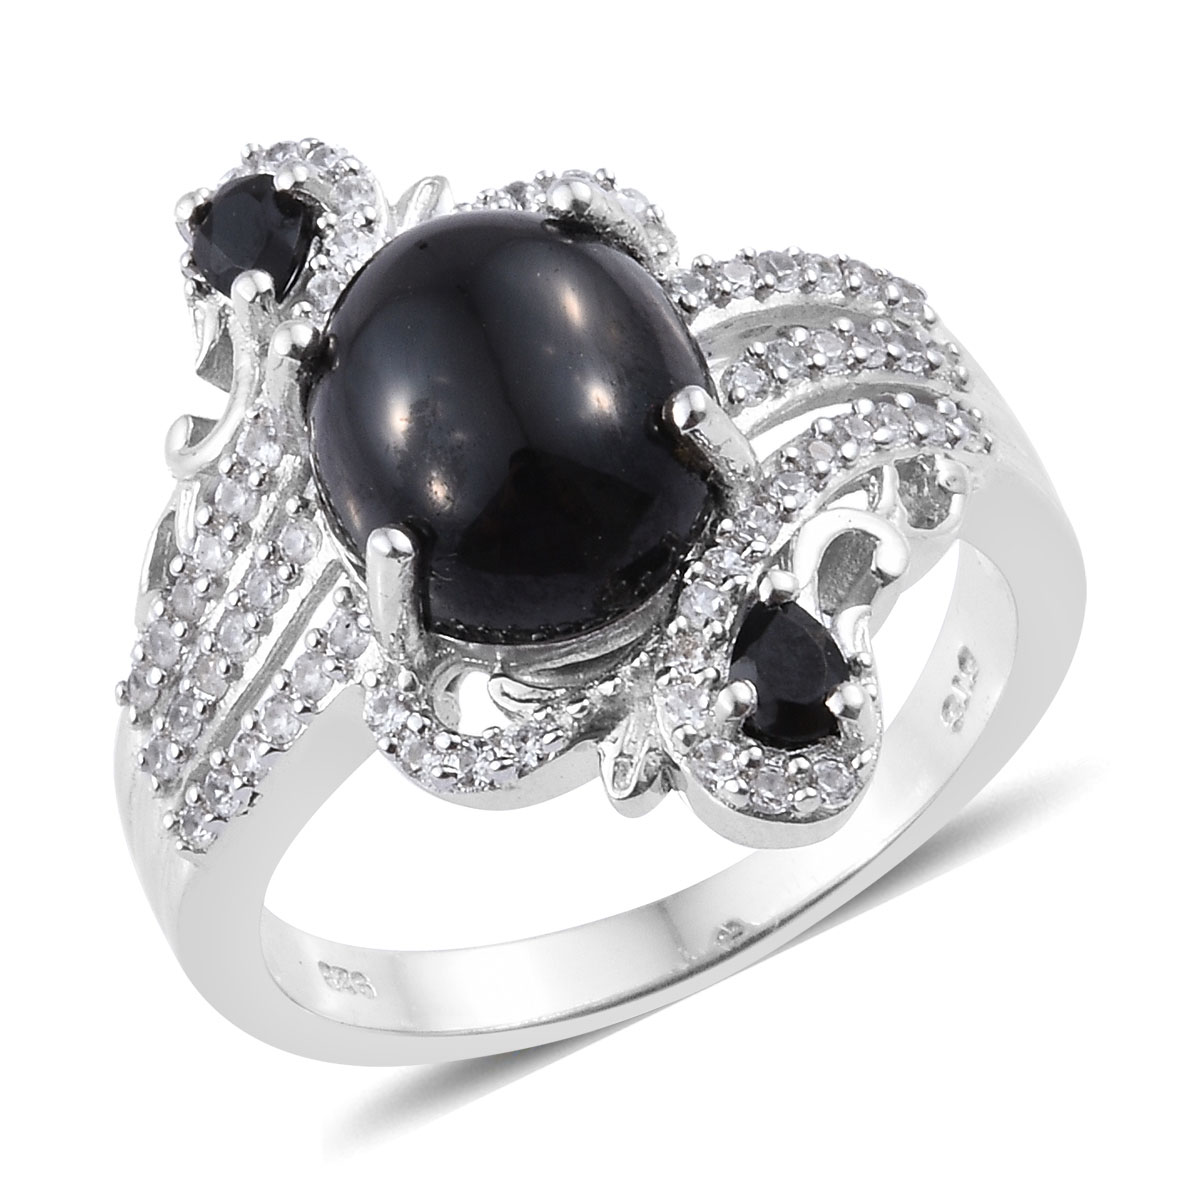 Thai Black Spinel, Cambodian Zircon Ring (Size 11.0) in Platinum Over Sterling Silver 7.60 ctw